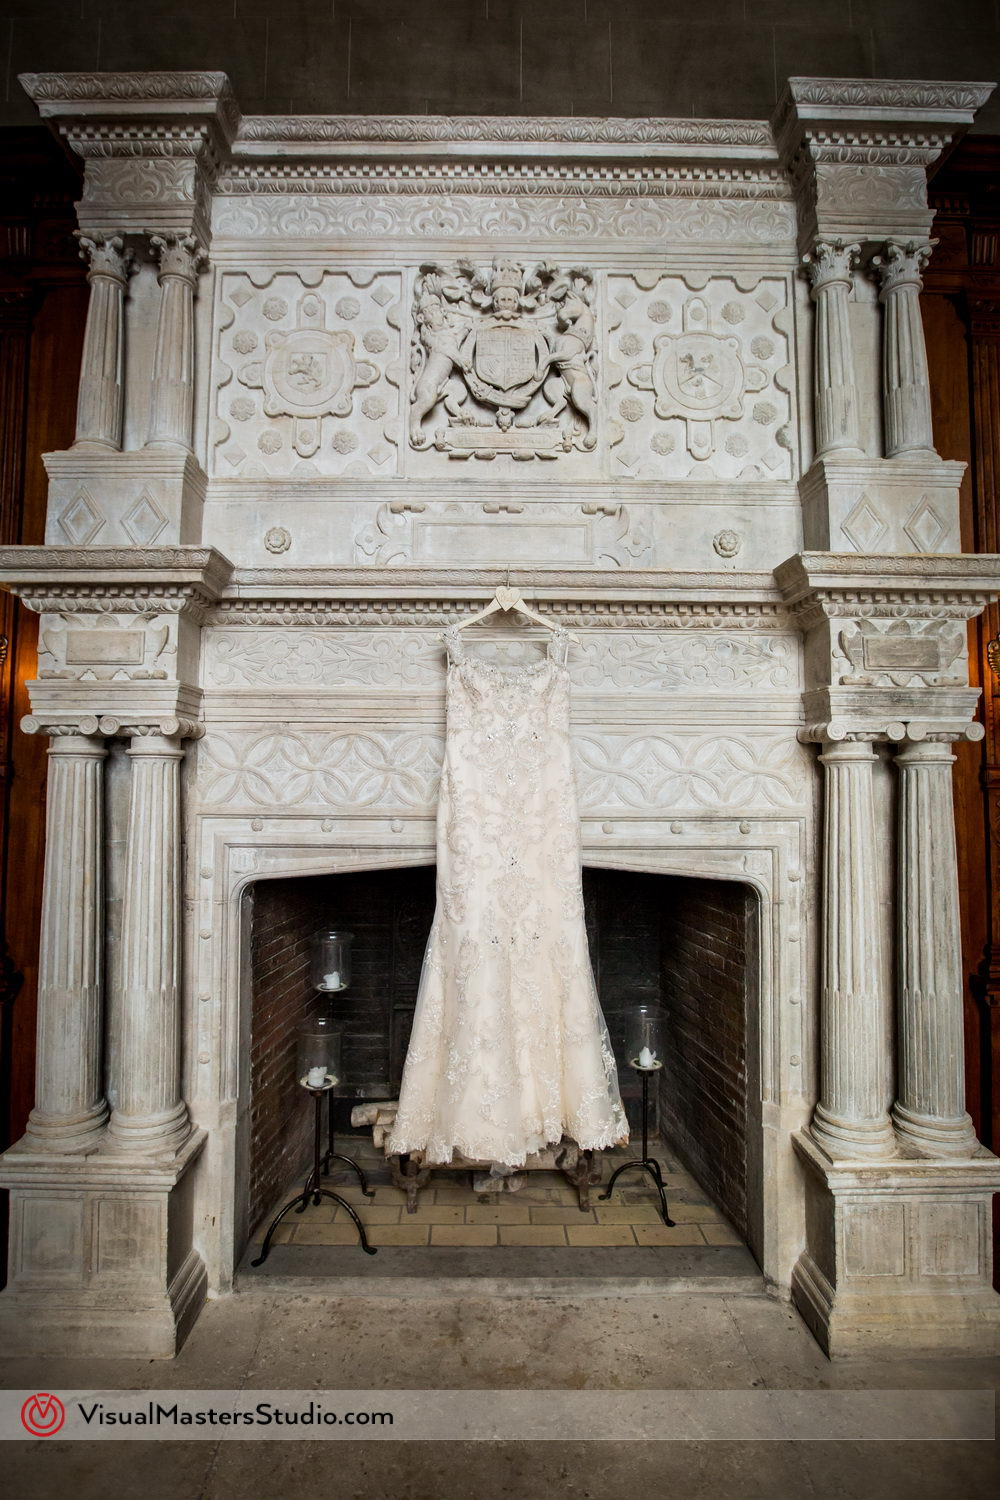 Wedding Dress by the Fireplace at Skylands Manor by Visual Masters